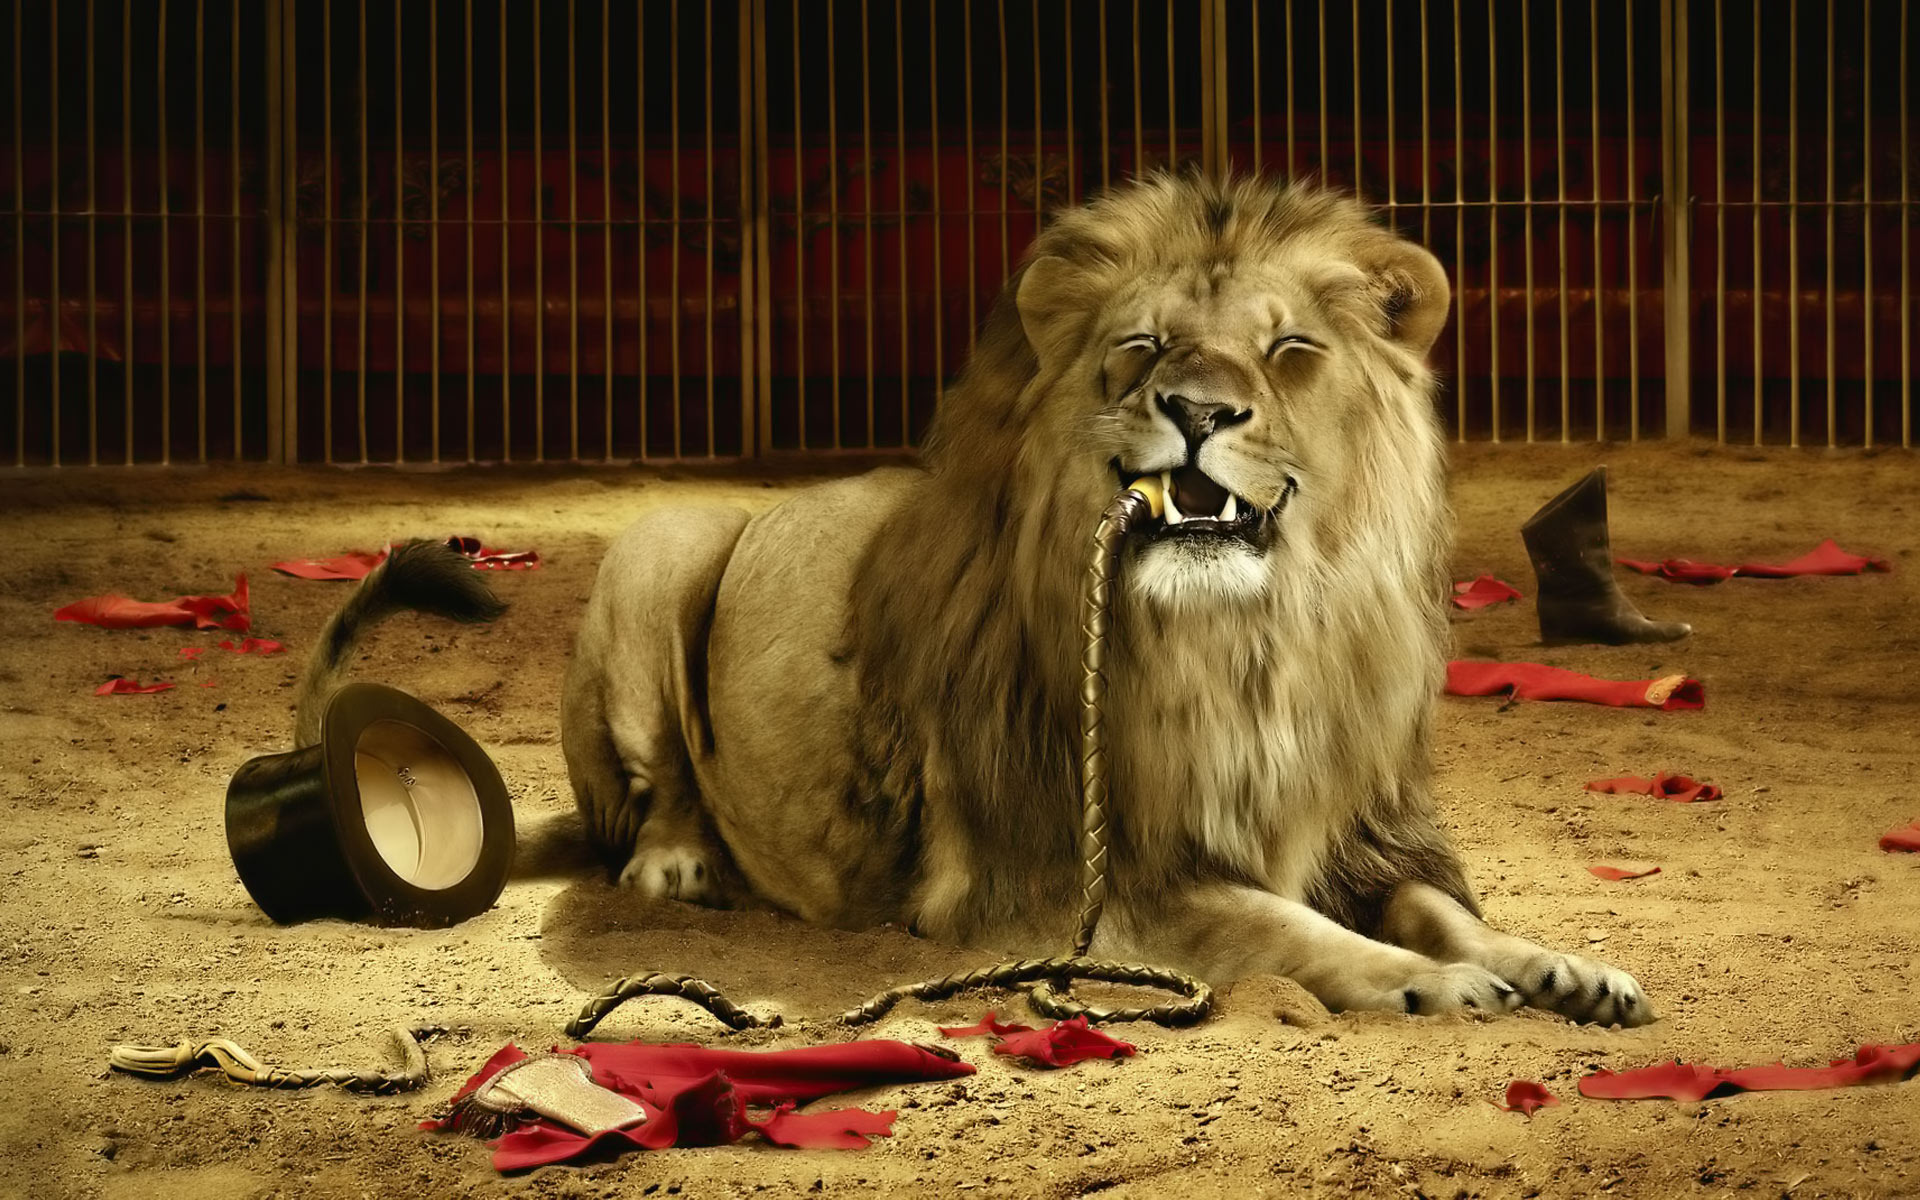 Lion ate the tamer